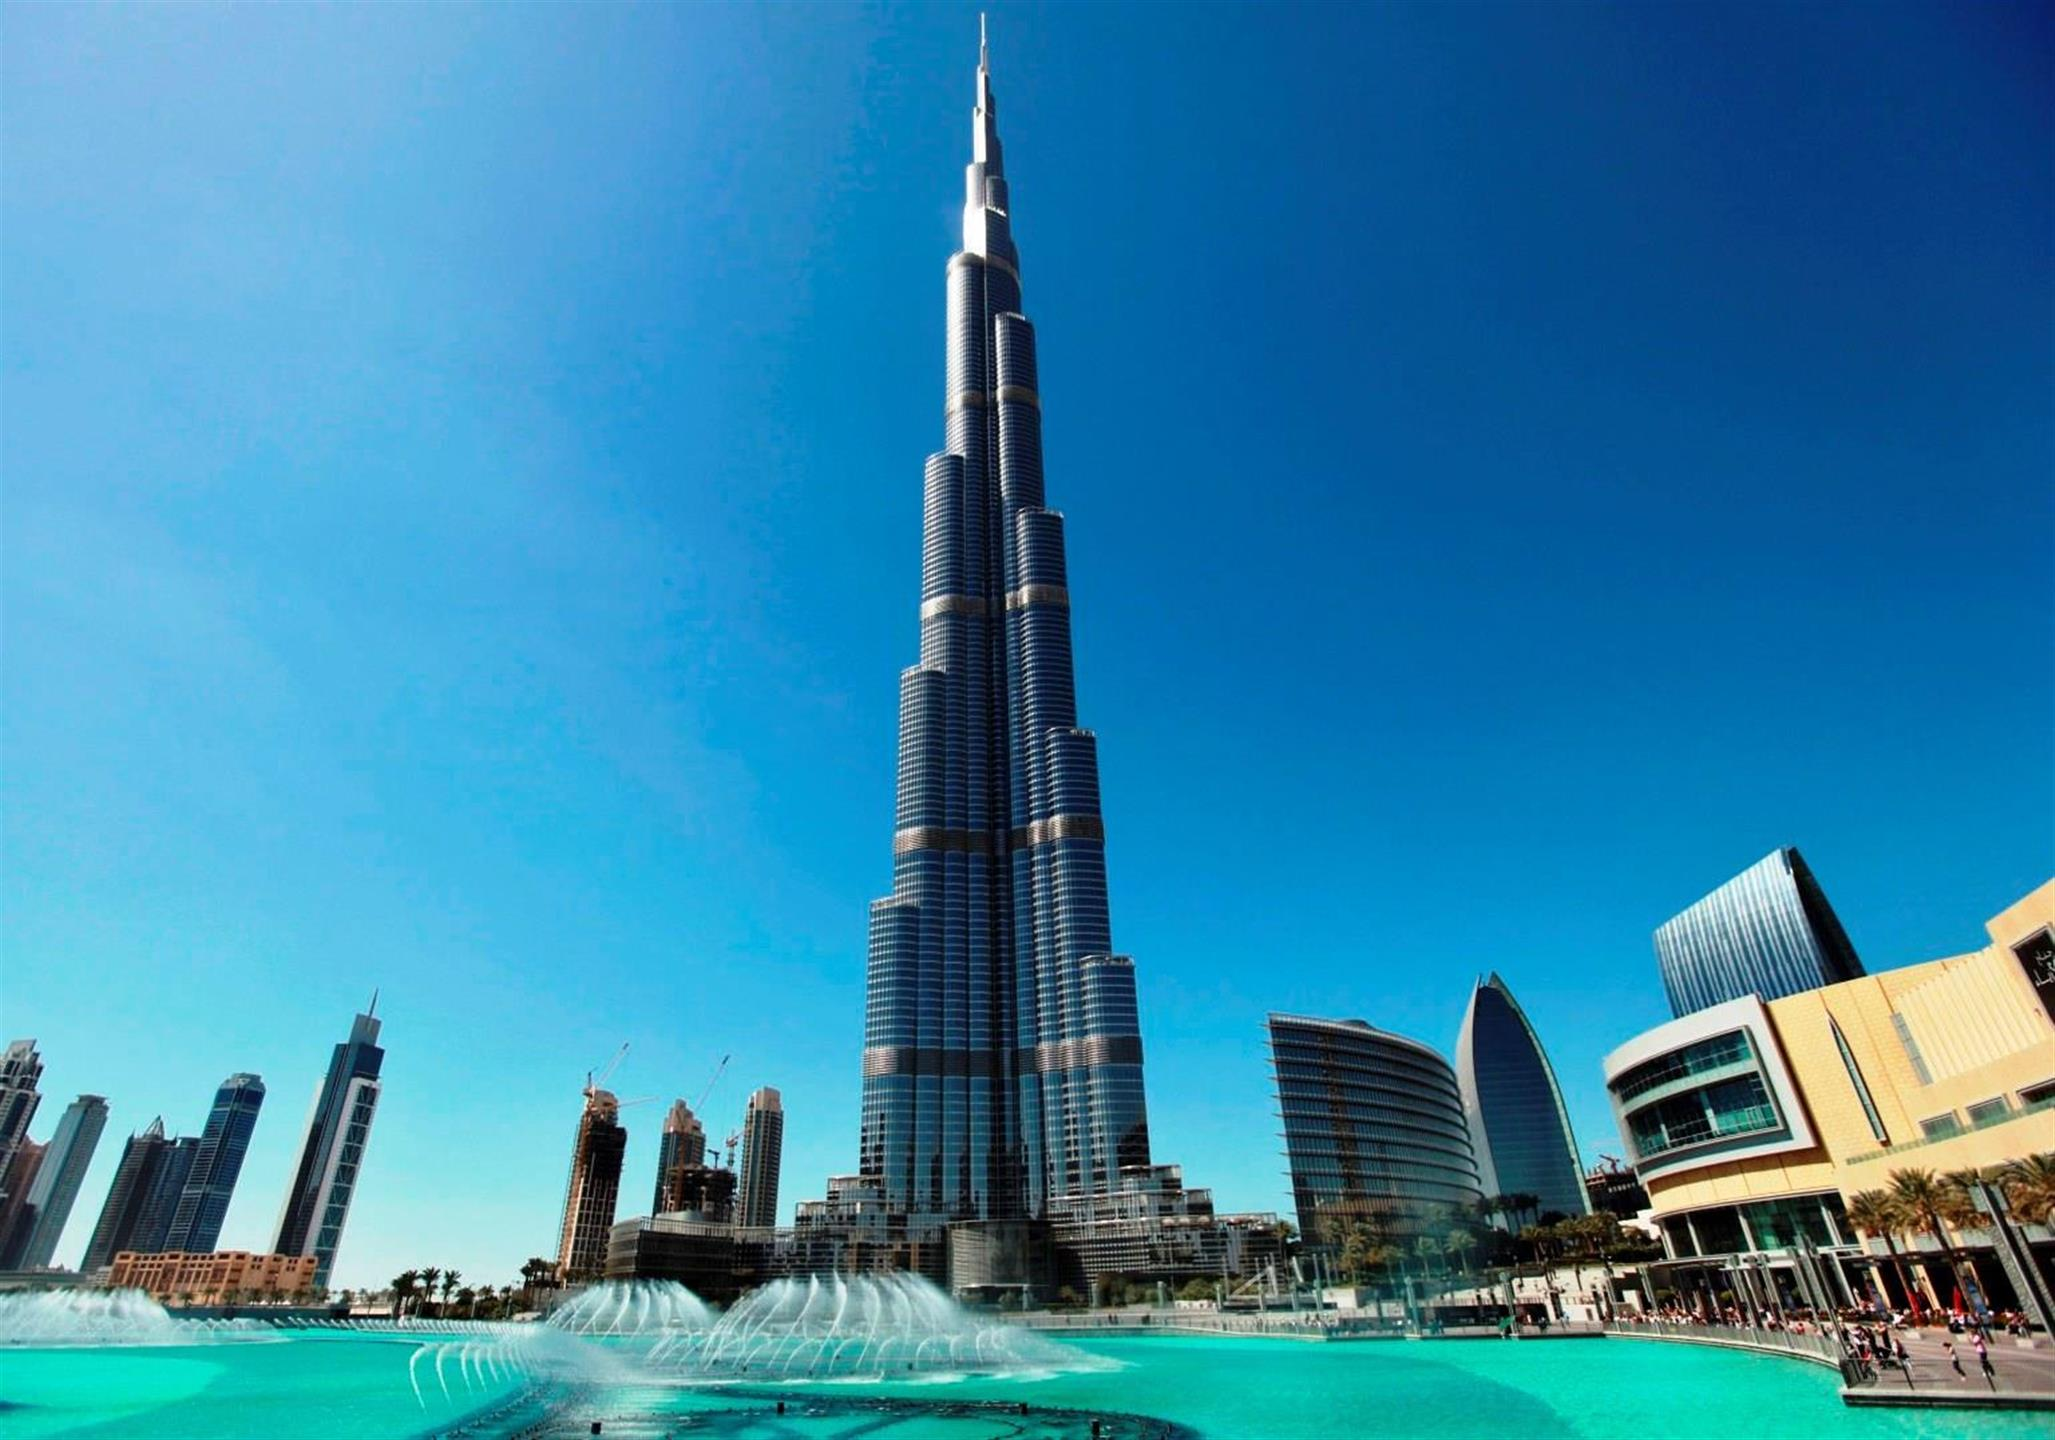 Type H-2 Bedroom Apartment For Sale In Burj Khalifa Downtown Dubai